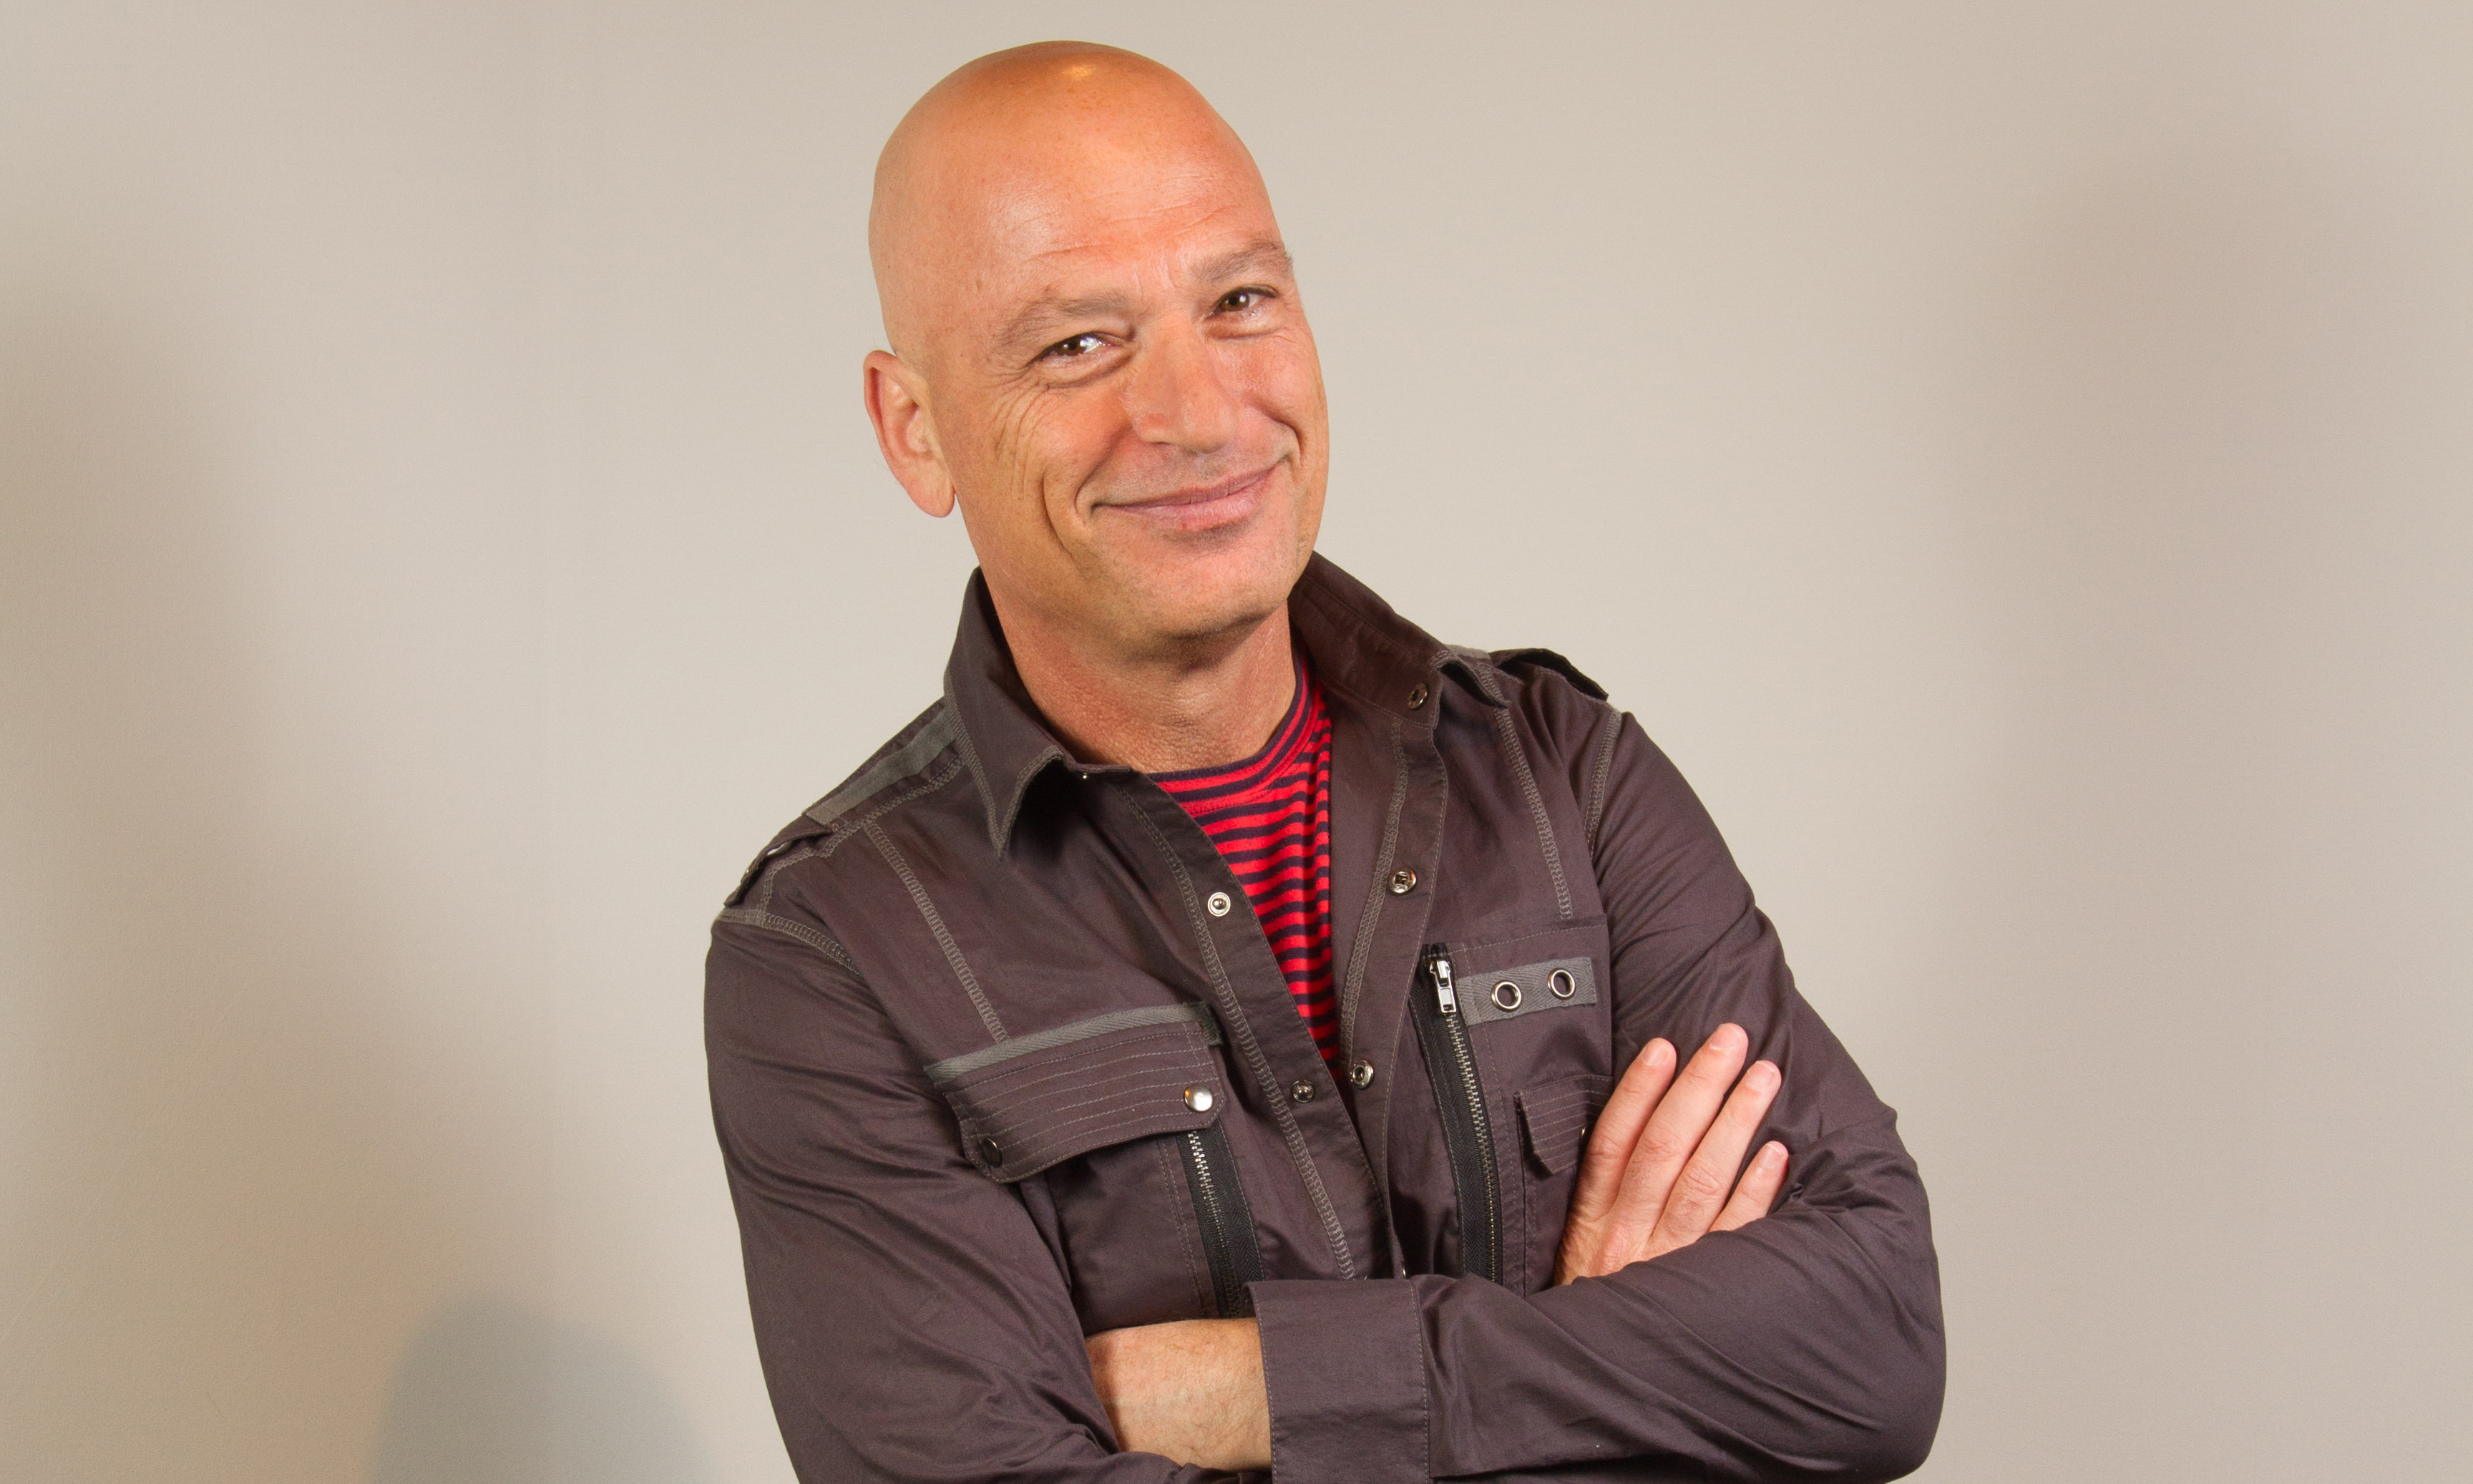 Howie Mandel Raises Awareness About Atrial Fibrillation recommend